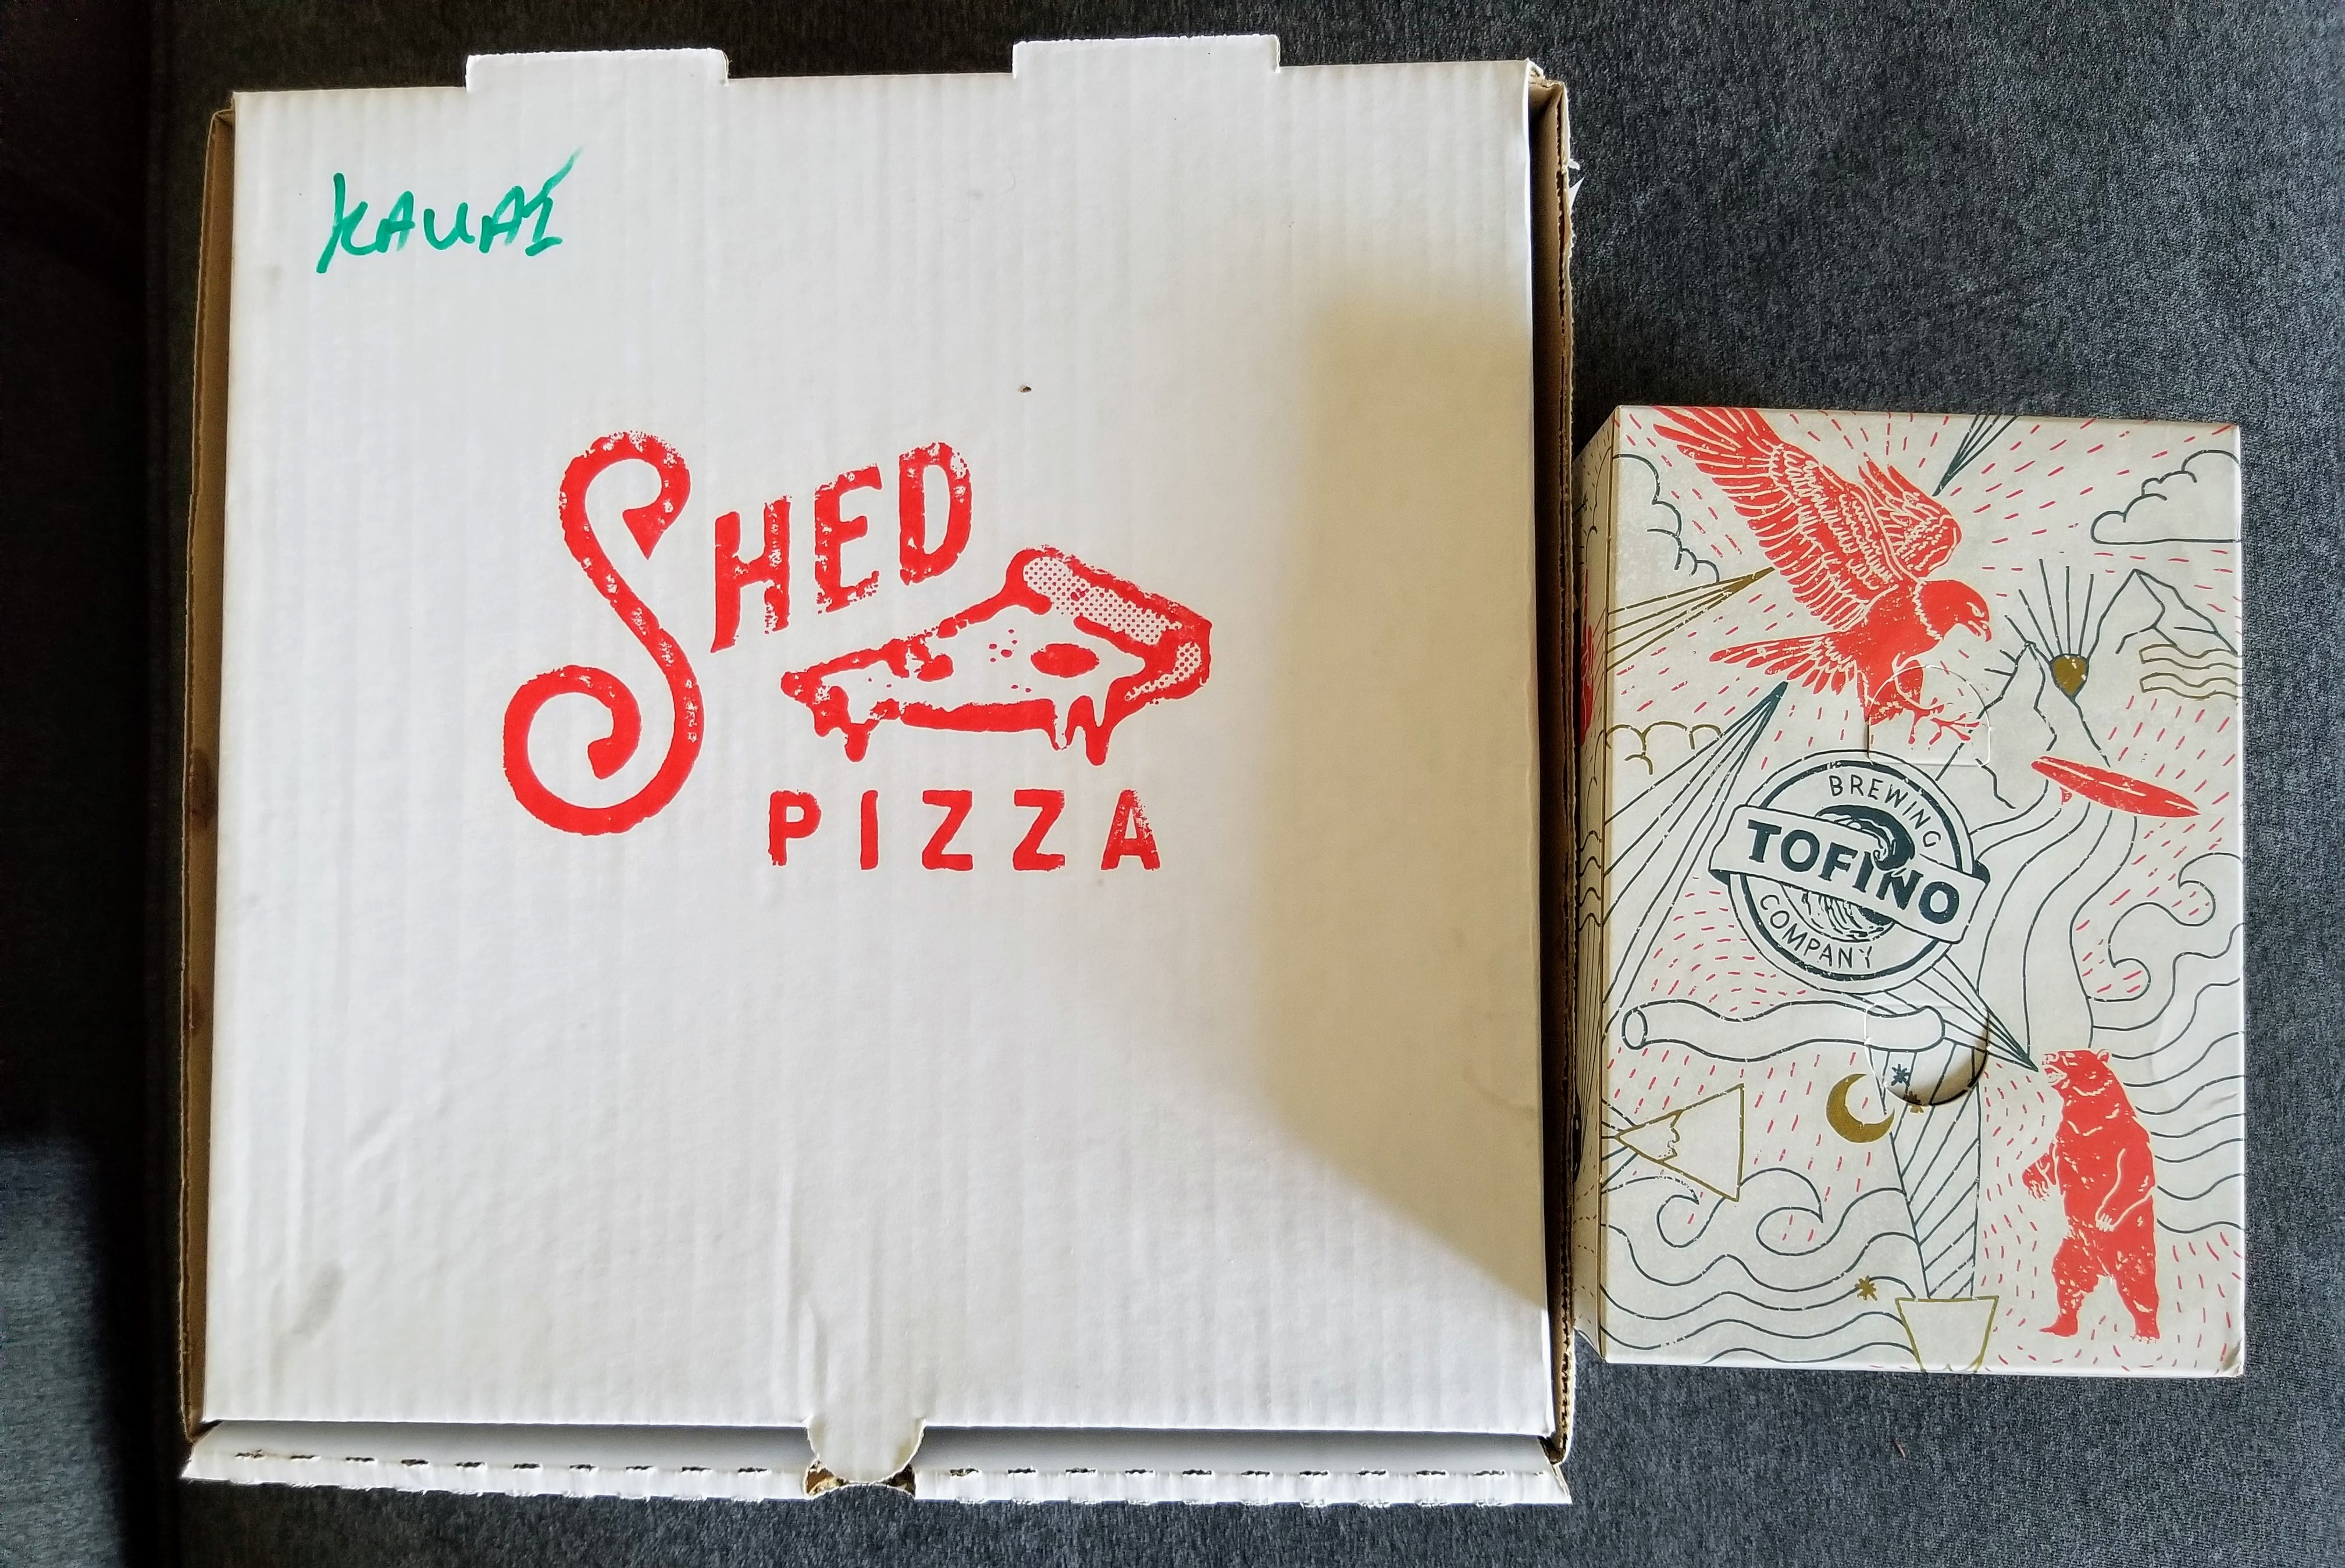 The Shed pizza and 6 pack of beer deal: a good option to take to the beach